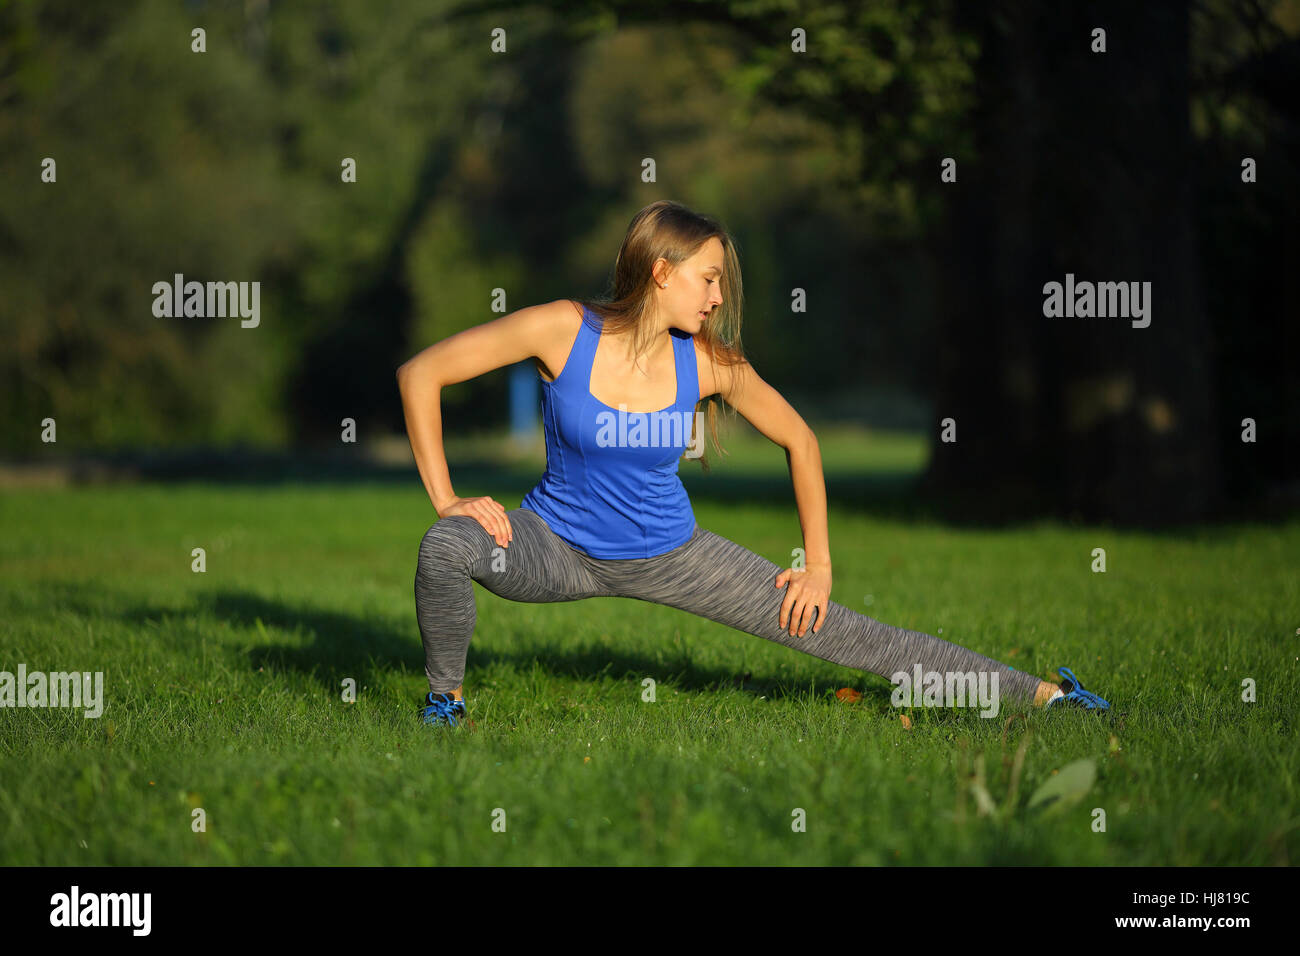 Beautiful young woman doing thrust in park - Stock Image